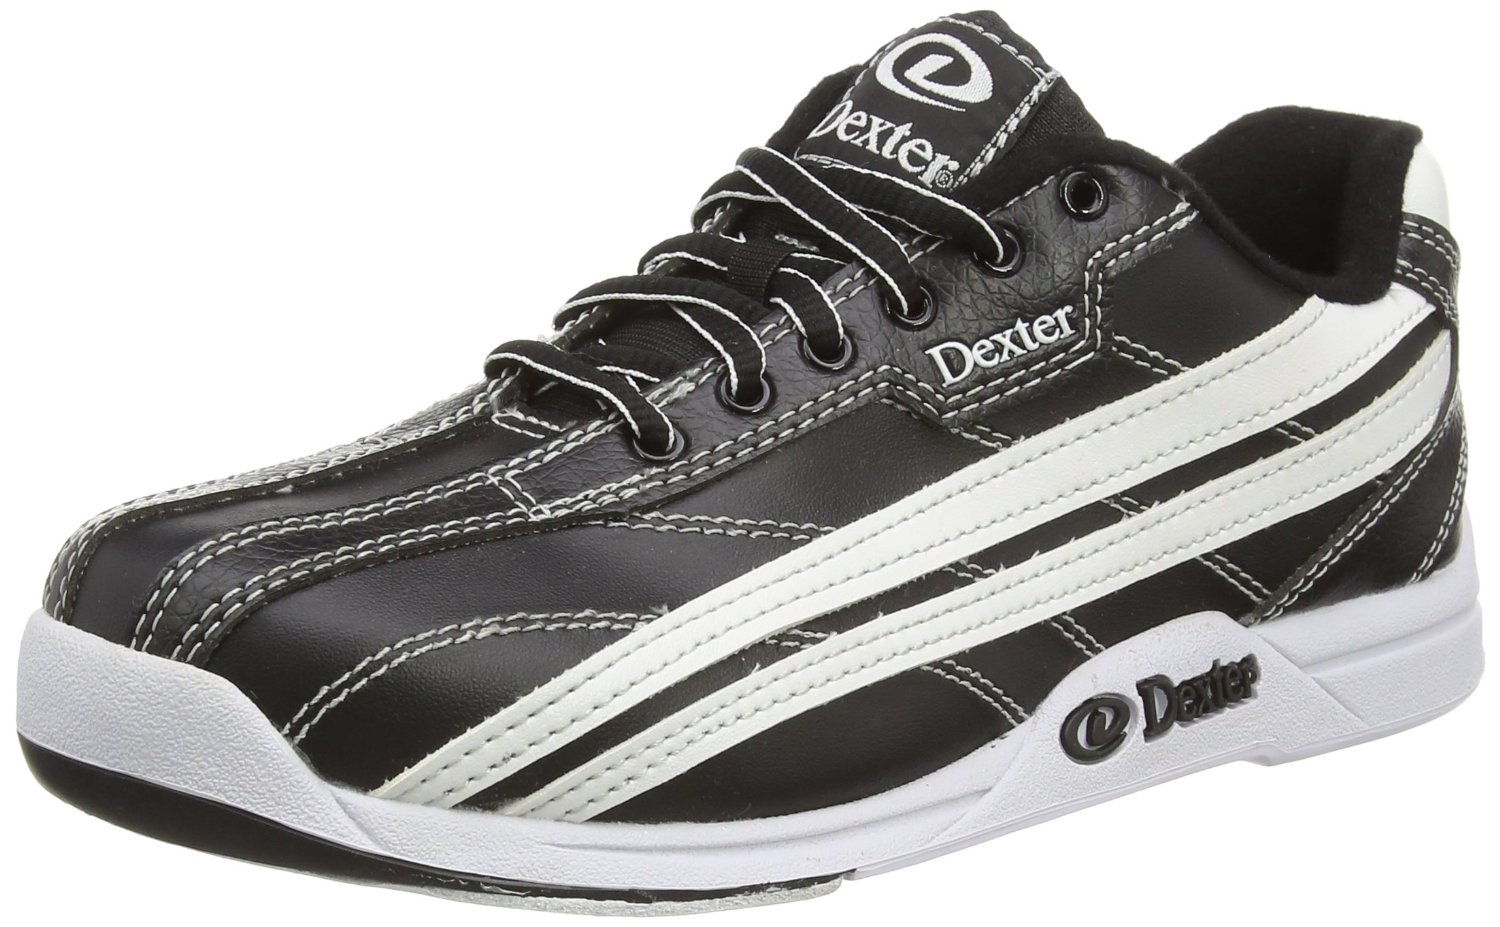 How Can I Find the Best Bowling Shoes?